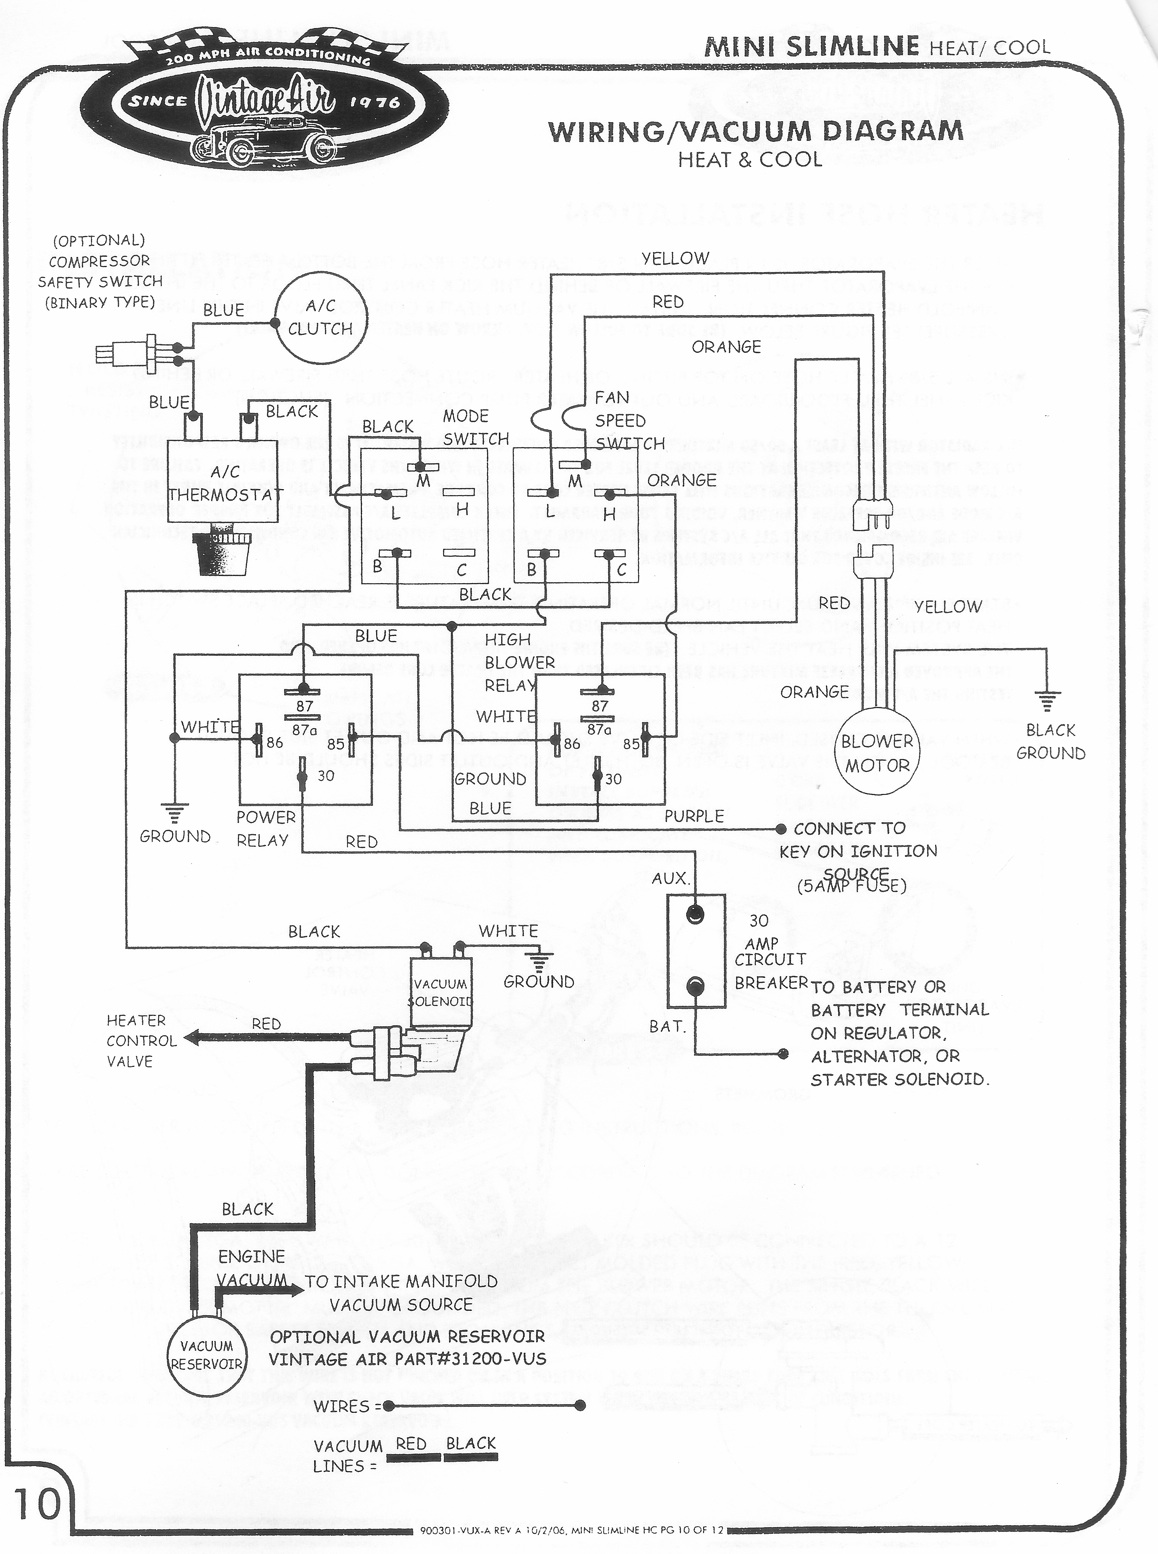 VA1 vintage air wiring diagram 1982 kawasaki 750 ltd 2 cylinder wiring trinary switch wiring diagram at gsmportal.co